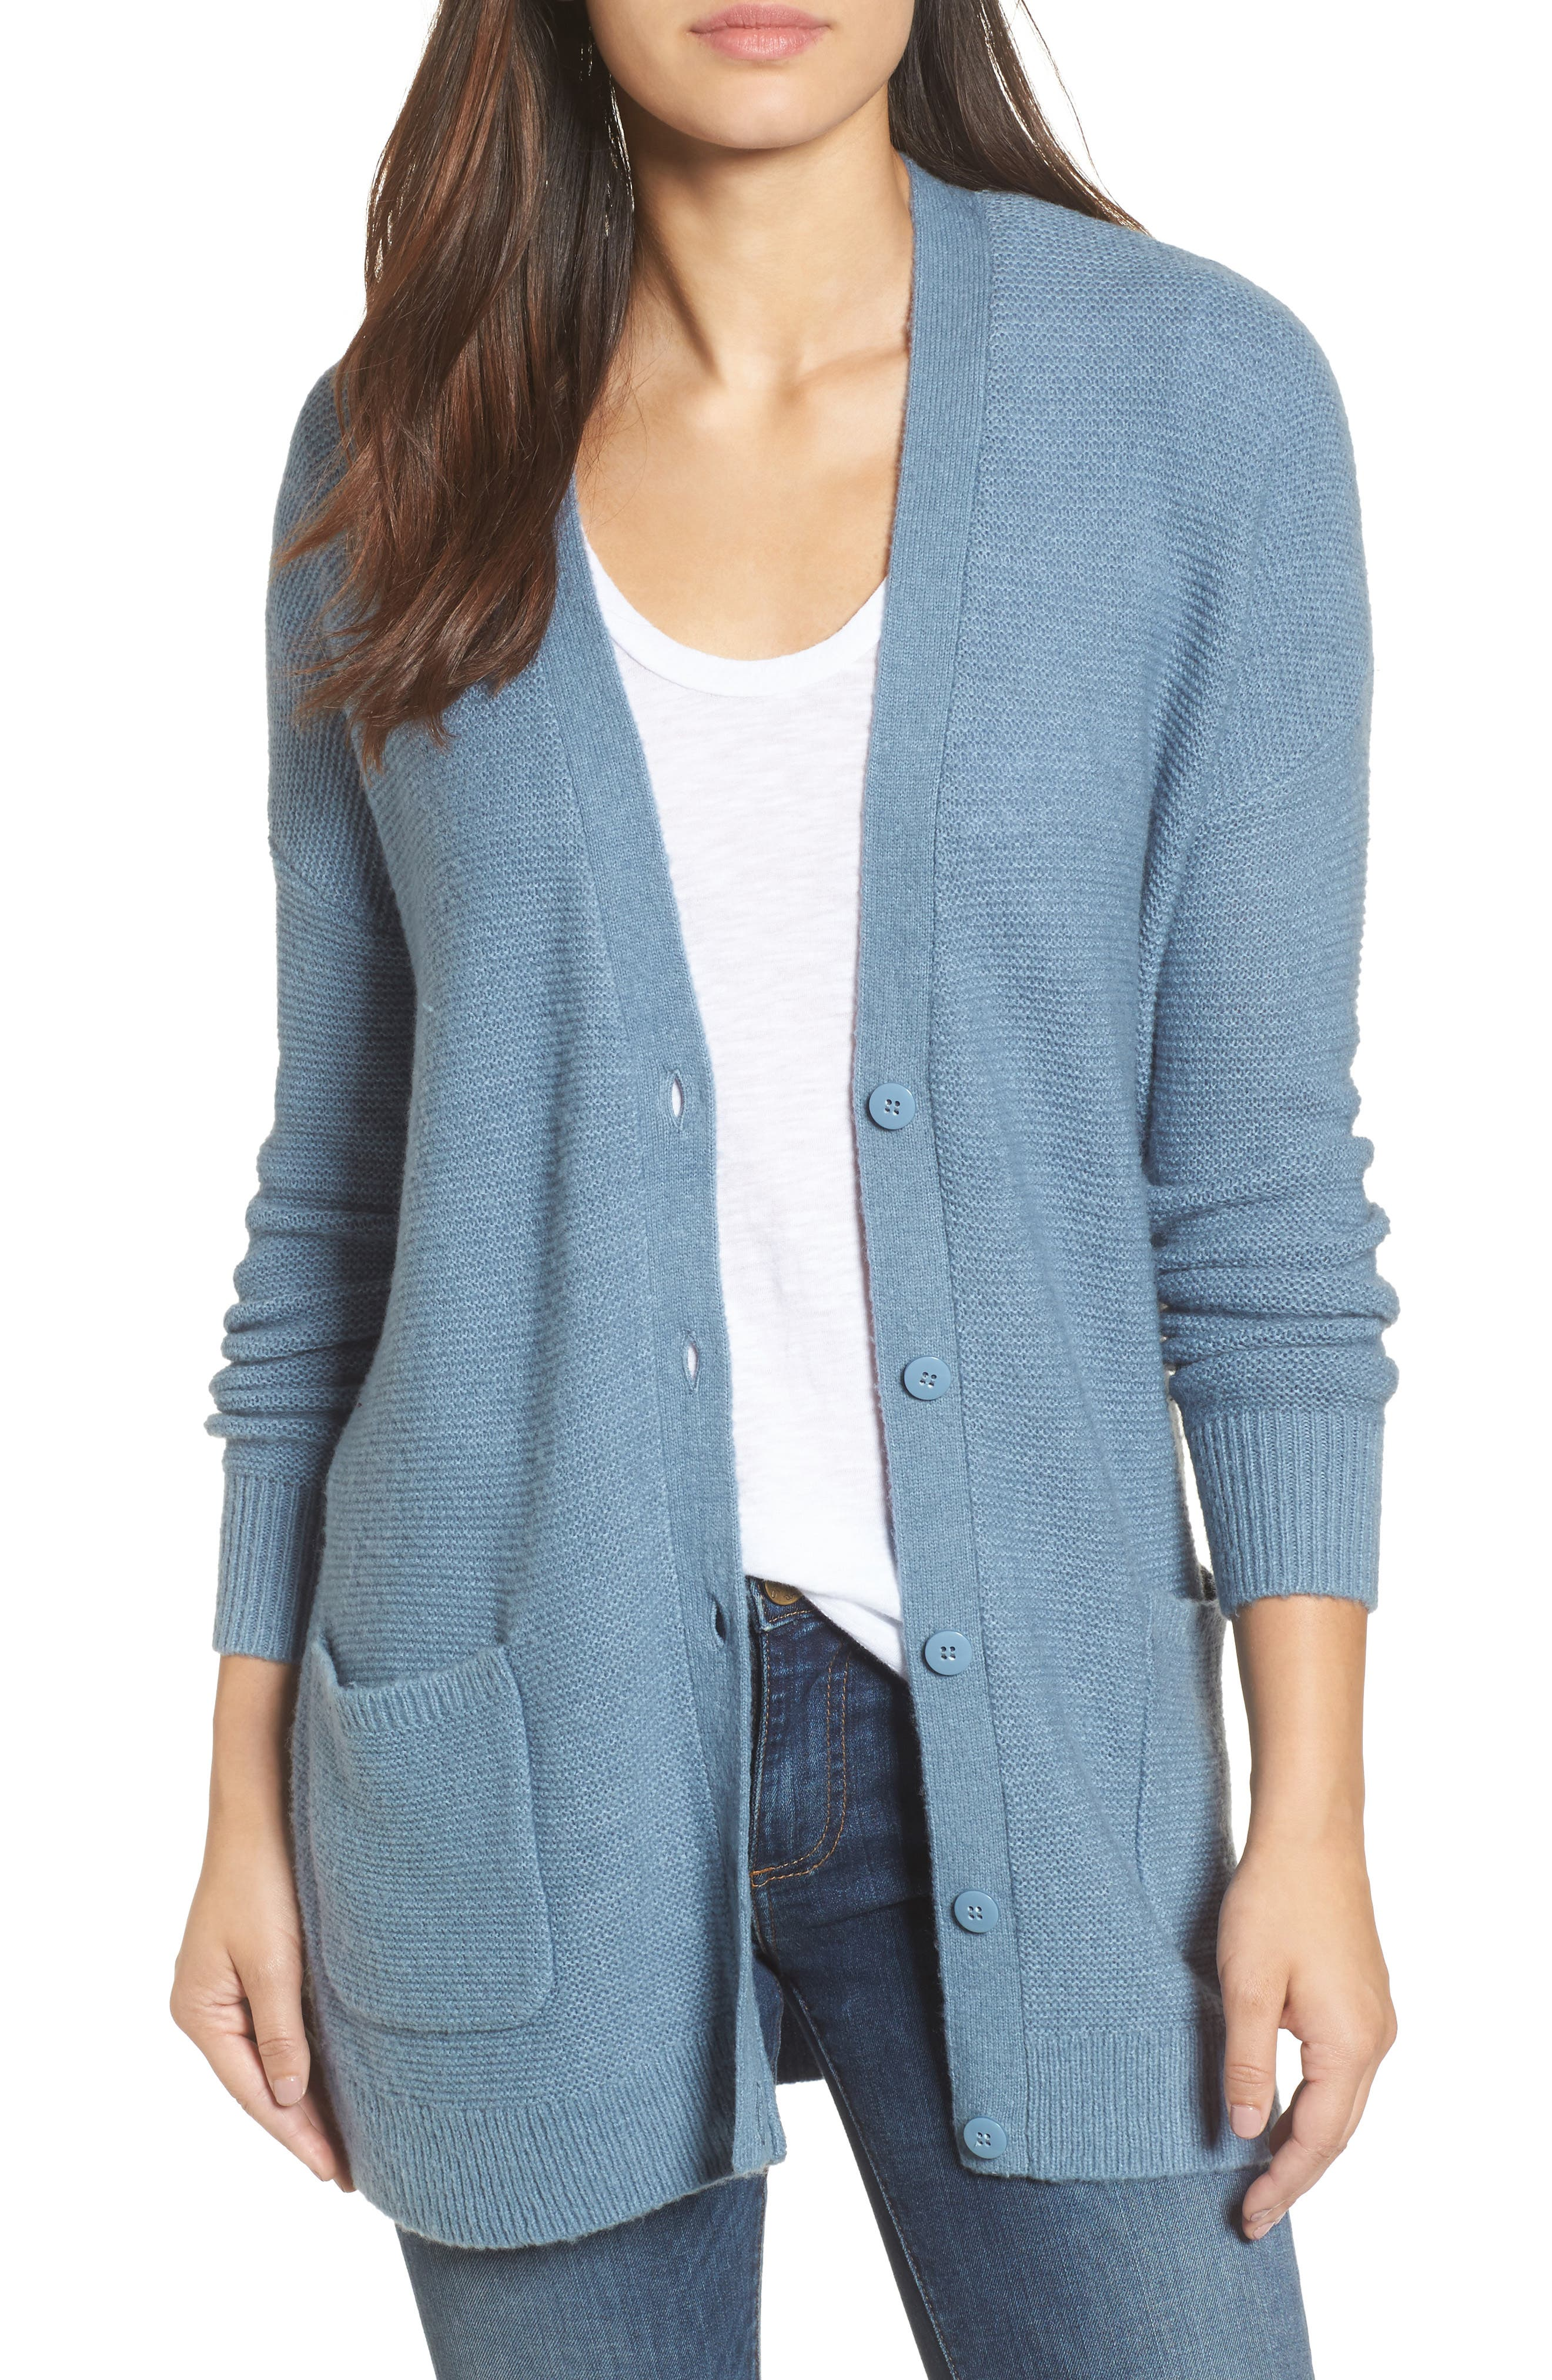 Relaxed Boyfriend Cardigan,                             Main thumbnail 1, color,                             Blue